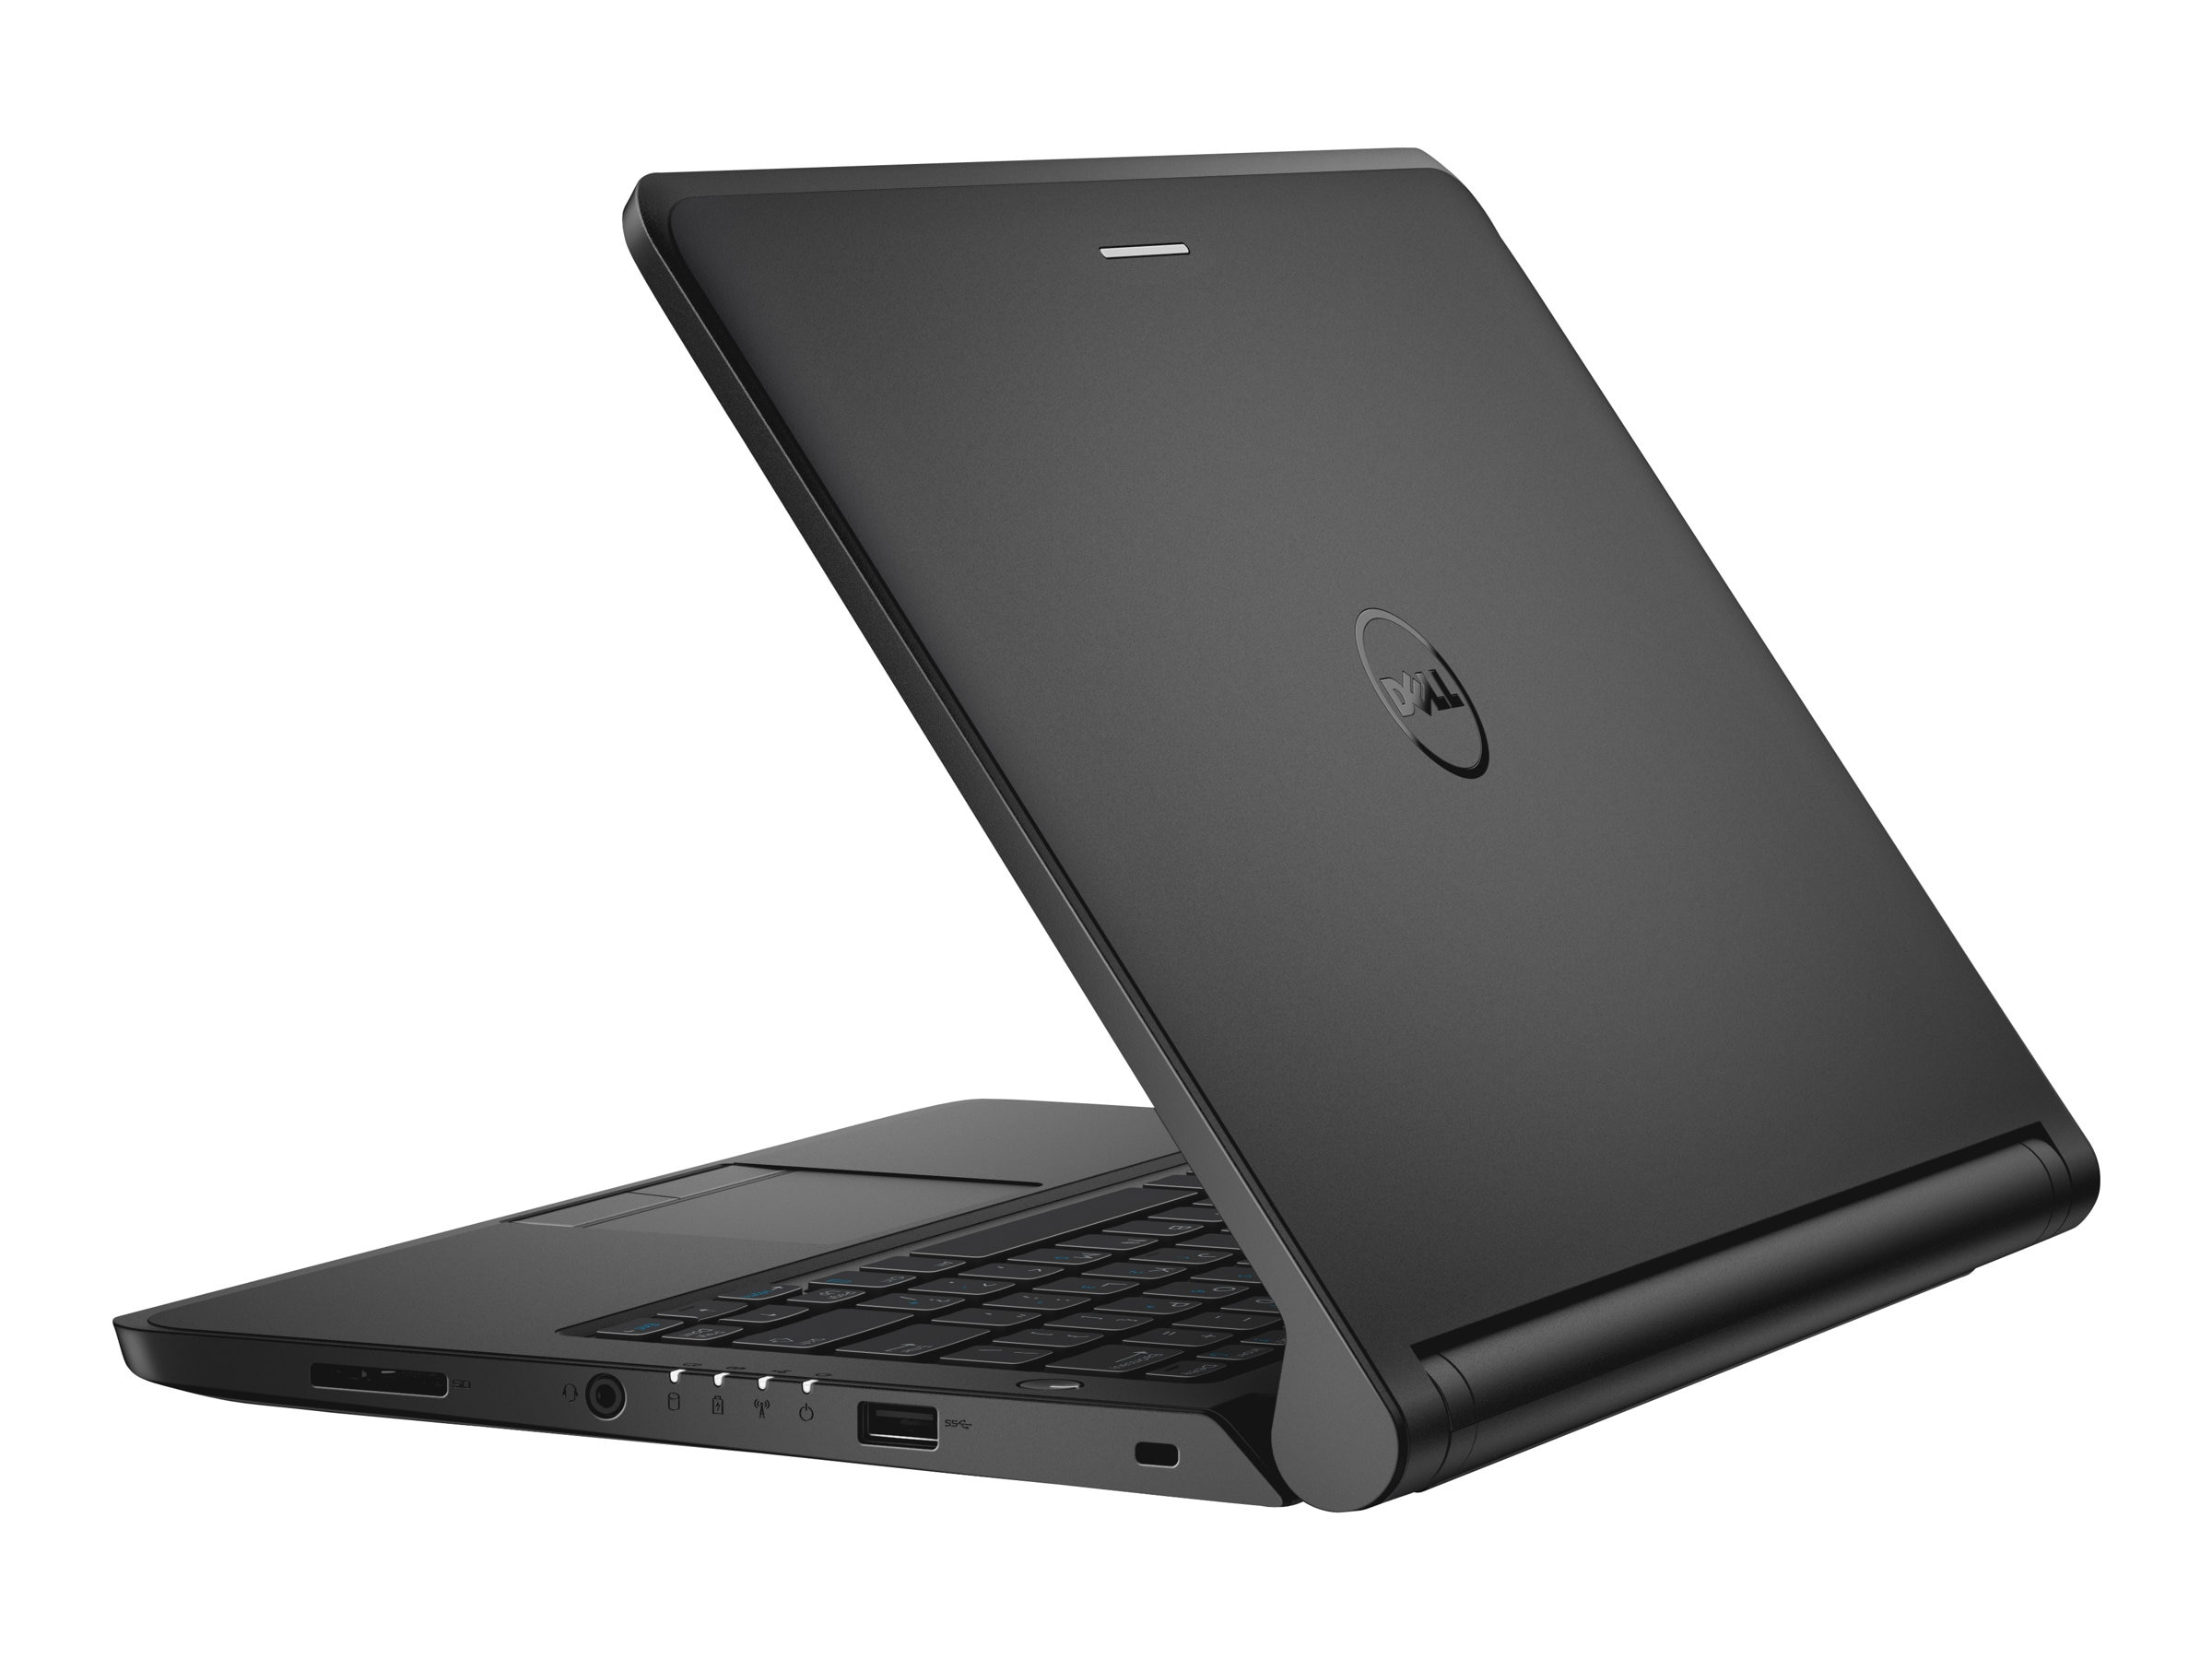 Dell WD5D5 Image 5